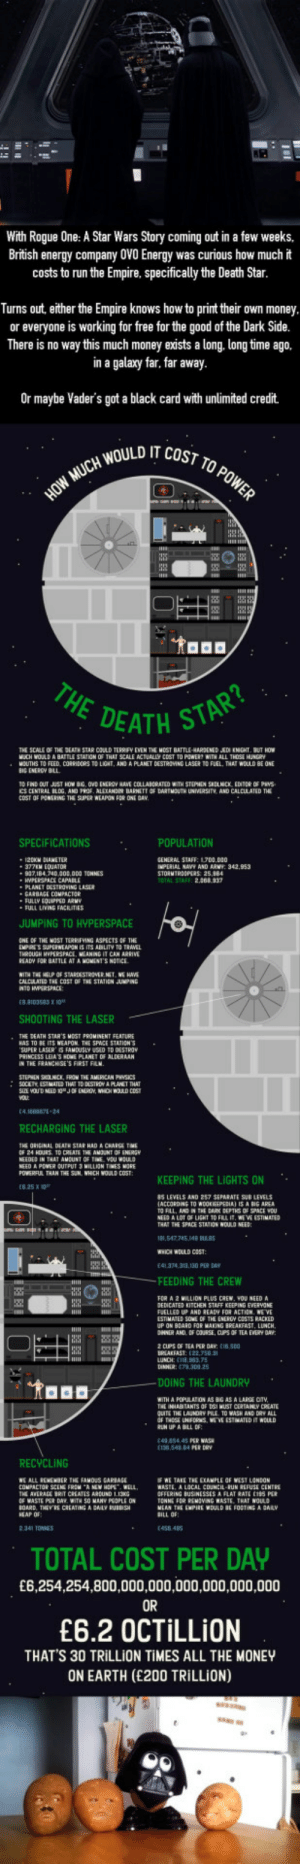 For only $7.7 Octillion a day, you too can operate a Death Star: With Rogue One: A Star Wars Story coming out in a few weeks.  British energy company 0VO Energy was curious how much it  costs to run the Empire, specifically the Death Star  Turns out, either the Empire knows how to print their own money  or everyone is working for free for the good of the Dark Side.  There is no way this much money exists a long, long time ago.  in a galaxy far. far away  Or maybe Vader's got a black card with unlimited credit  MUCH  WOULD IT COS)T  TO POWE  DEATH STA  THE SCALE  OF THE DEATH STAR COULD TE  EVEN THE MOST  BATTLE-HARDENED JEDI ENIGHT  ALL THOSE HUNGRN  EIG ENERCV BLL  OUT JUST HOw  OVD ENEROV WAVE  COLLABORATEO WITH S  SPECİFİCATİONS  POPULATION  377KM EQUATOR  937,184 34D 0t,00O TONNES  PLANET DESTROVING LASER  ULLV EQUIPPED ARWV  STORMTRODPORS 25,984  DTAL STAF: 2468 937  FULL LINING FACILITIES  JUMPİNG TO HYPERSPACE  THE MOST TERRIFYING ASPECTS OF  ADN FOR BATTLE AT A MOWINT'S NOTICE  NTD MPERSPACE  SHOOTING THE LASER  THE SPACE STAT  TD DESTRO  PLANET OF ALDERAAN  IN THE FRANCHSE'S FIRST  RECHARGİNG THE LASER  HE AMOUNT o  UN WHICH OULD COST  KEEPING THE LIGHTS ON  8.25 X  85 LEVELS AND 257 SEPARATE SUB LEVELS  IT WE VE ESTIMATED  547745348 BUBS  41374 313,130 PER  FEEDING THE CREW  FOR A 2 MILLION PLUS CREW, WOU NEED  OF COURSE, CUPS OF  TEA EVERY 0  DOING THE LAUNDRY  AS A LARGE OTV  THE INIABTANTS  QUITE THE LAUNDRY PILE TO WASN AND DRY ALL  136 54 84 PER DRV  RECYCLING  FAMOUS CARSACE  E TAKE THE EXAMPLE OF WEST  BILL O  2341 TONMES  TOTAL COST PER DAY  £6,254,254,800,000,000,000,000,000,000  OR  £6.2 OCTİLLİON  THAT'S 30 TRİLLİON TIMES ALL THE MONEY  ON EARTH (£200 TRİLLİON) For only $7.7 Octillion a day, you too can operate a Death Star